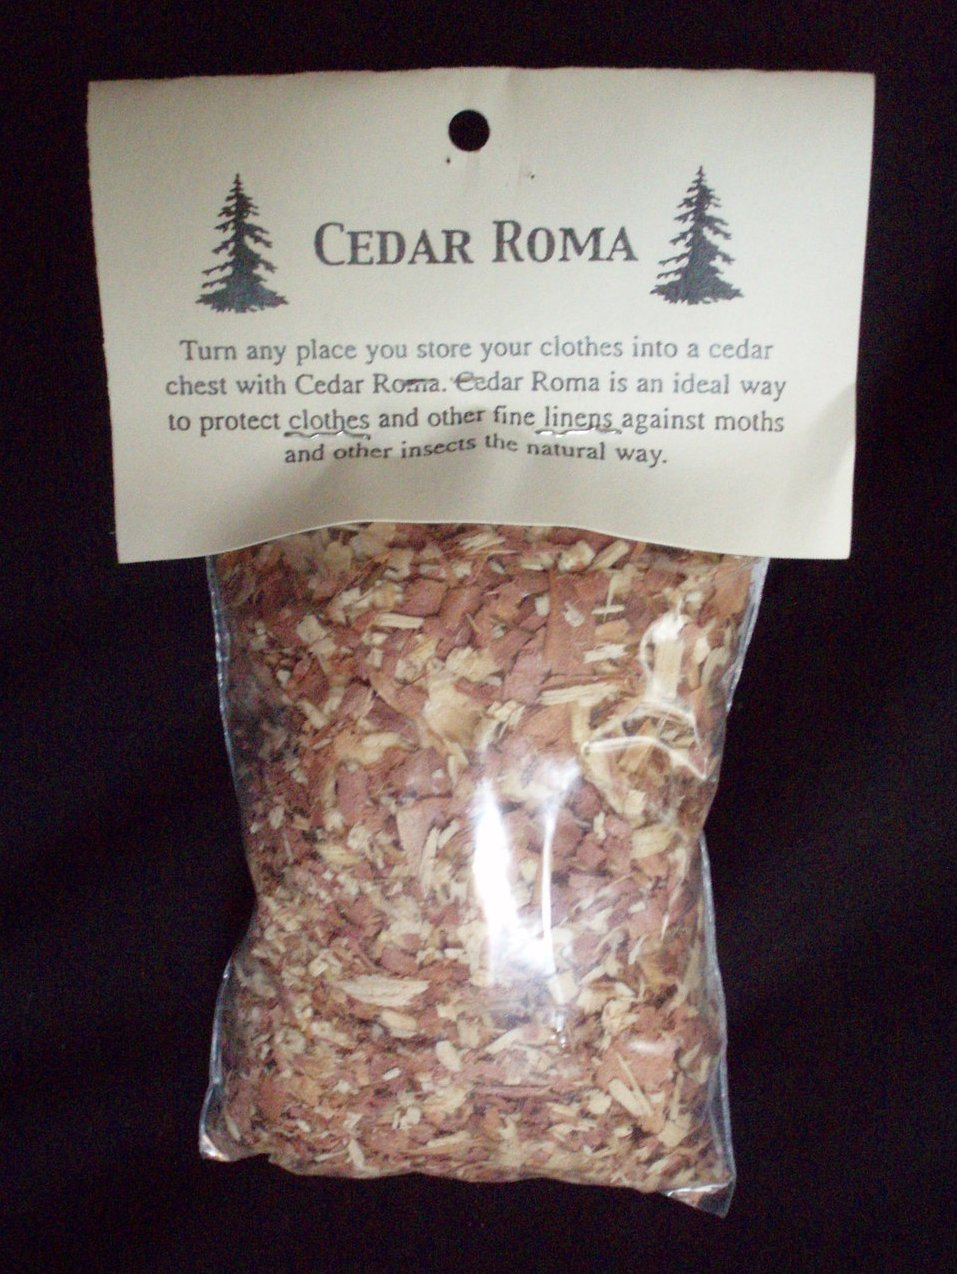 Cedar Roma Co wood shavings aromatic clothes protection